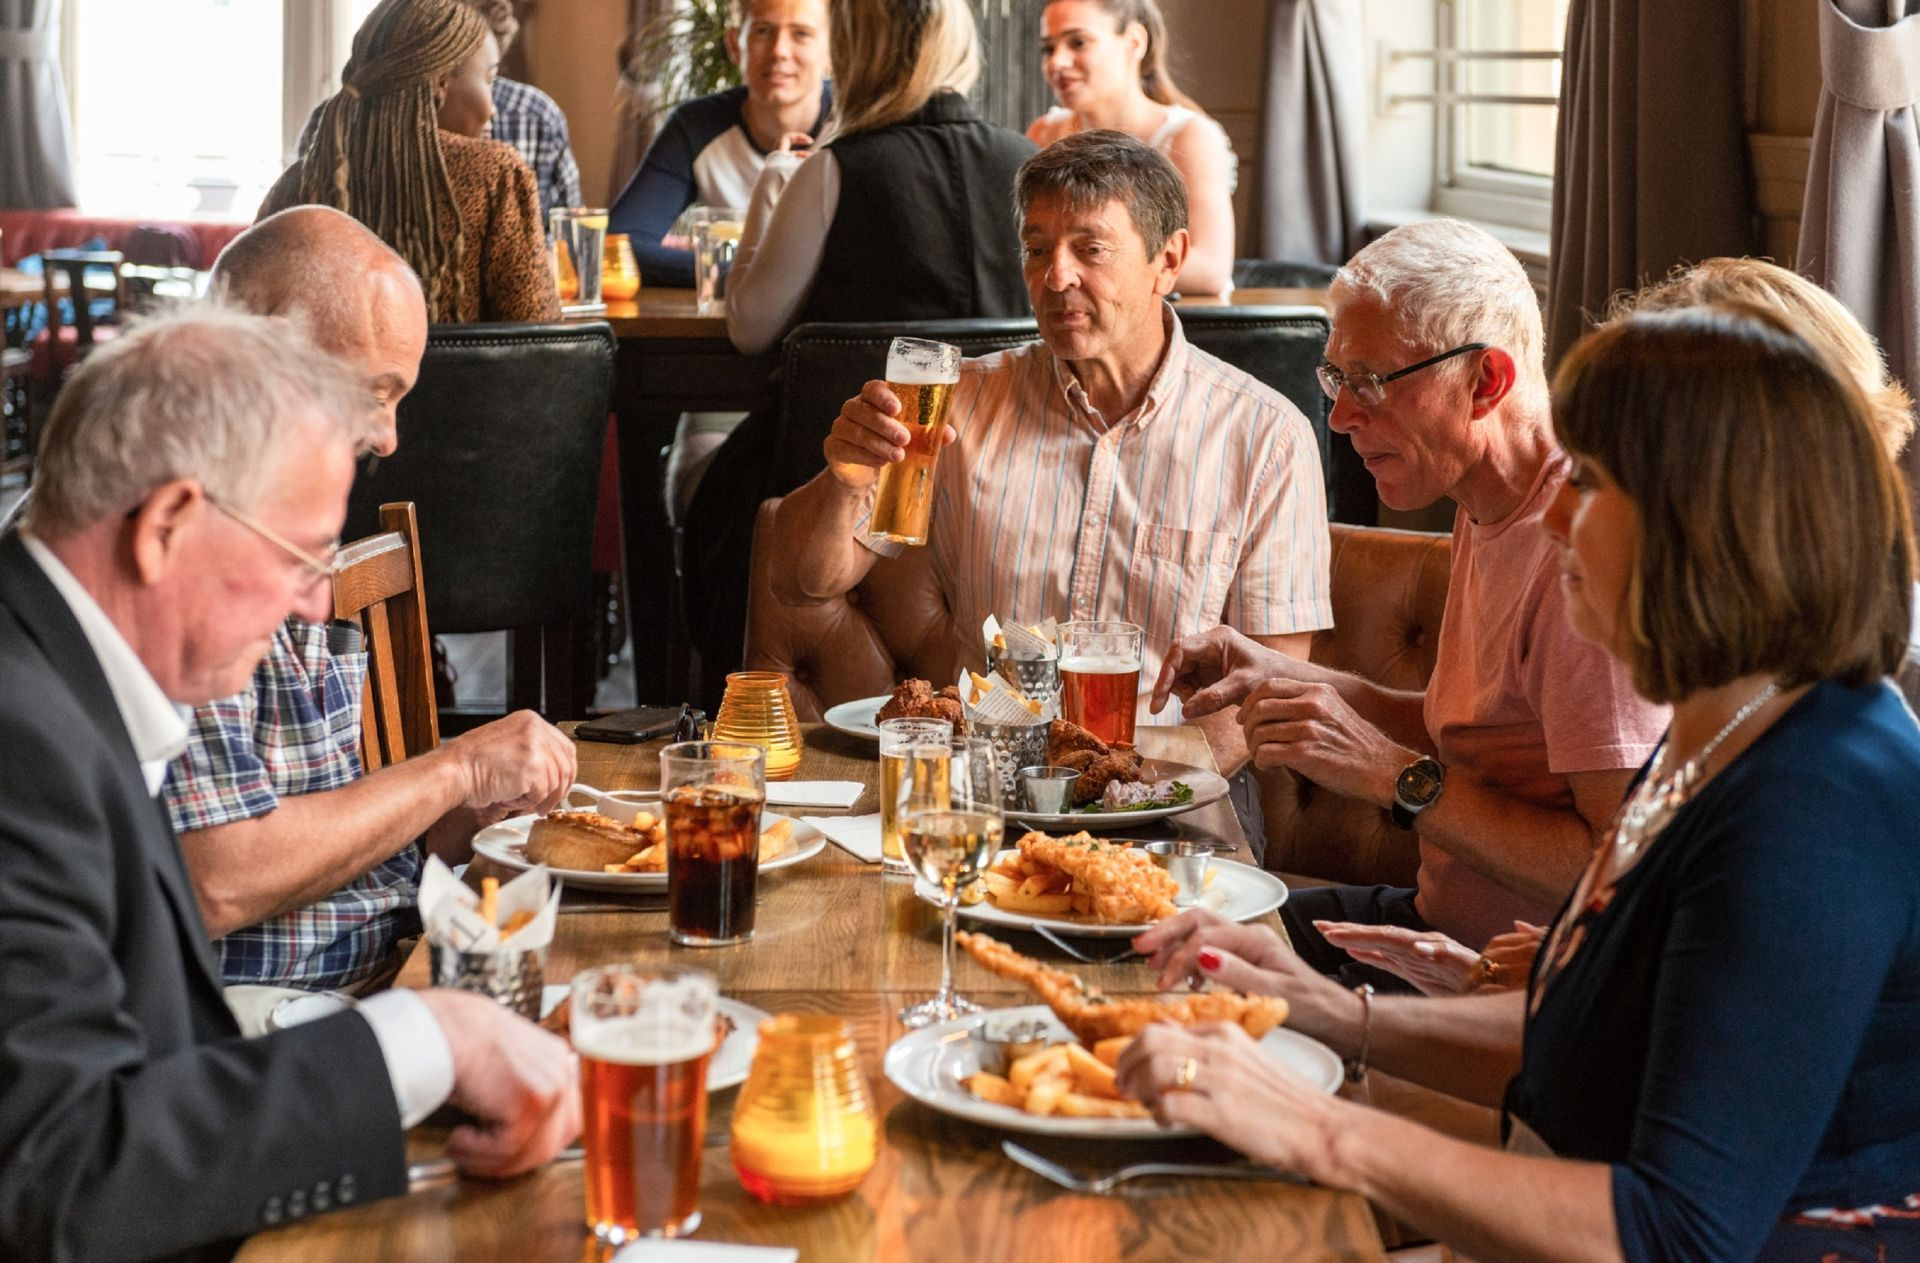 The English eat at 7 pm on average, pipped to the dinner table by the Dutch.  © georgeclerk / IStock.com